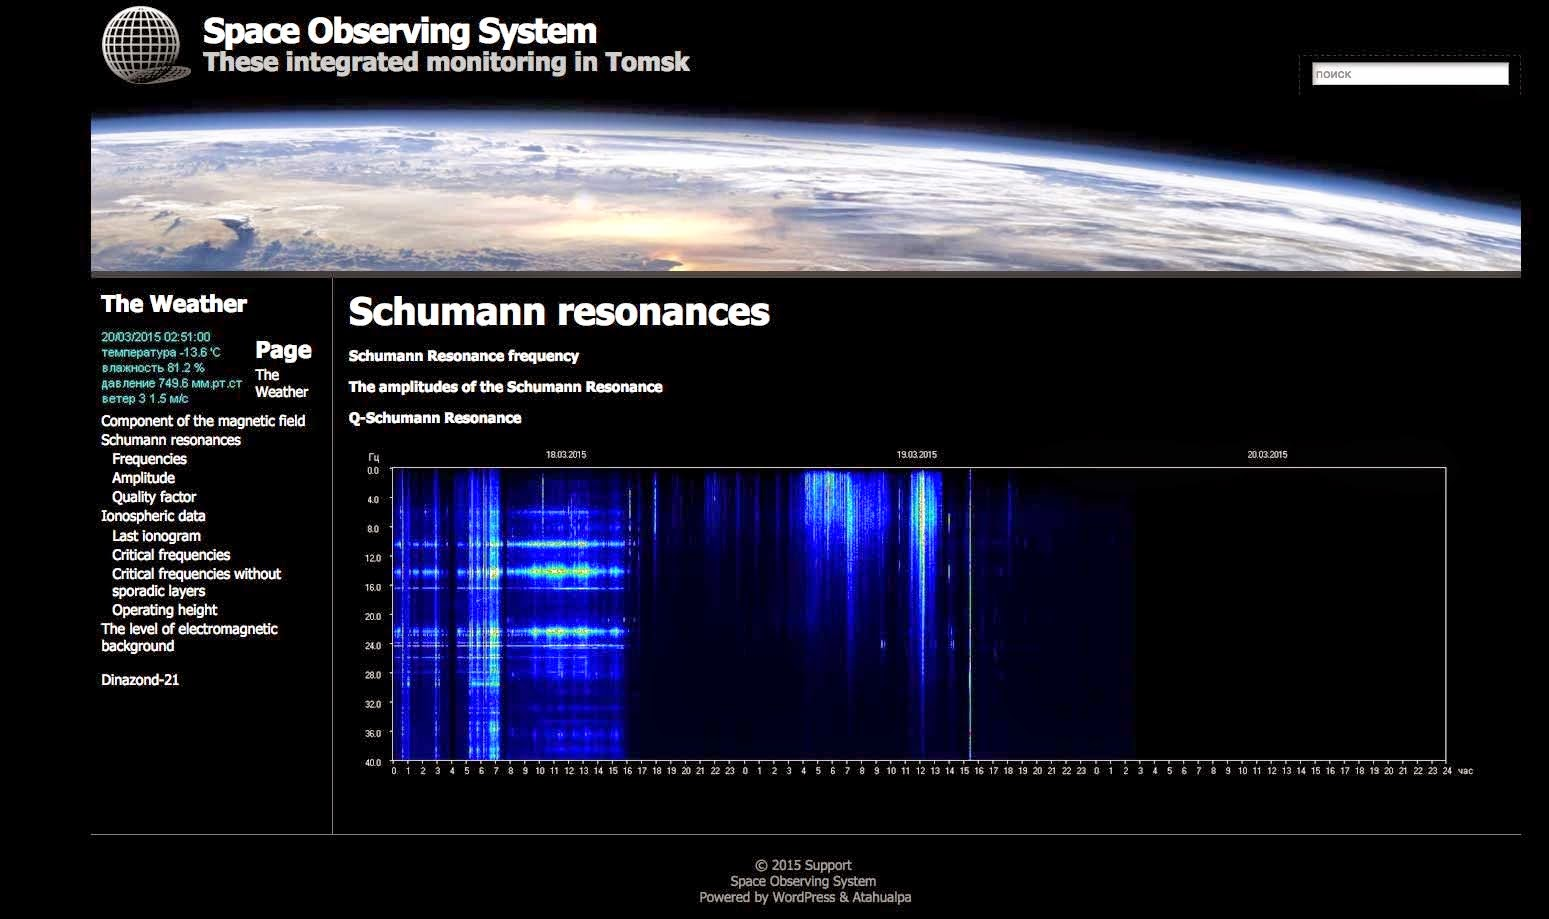 Schumann-resonance-18Mar2015 (1)